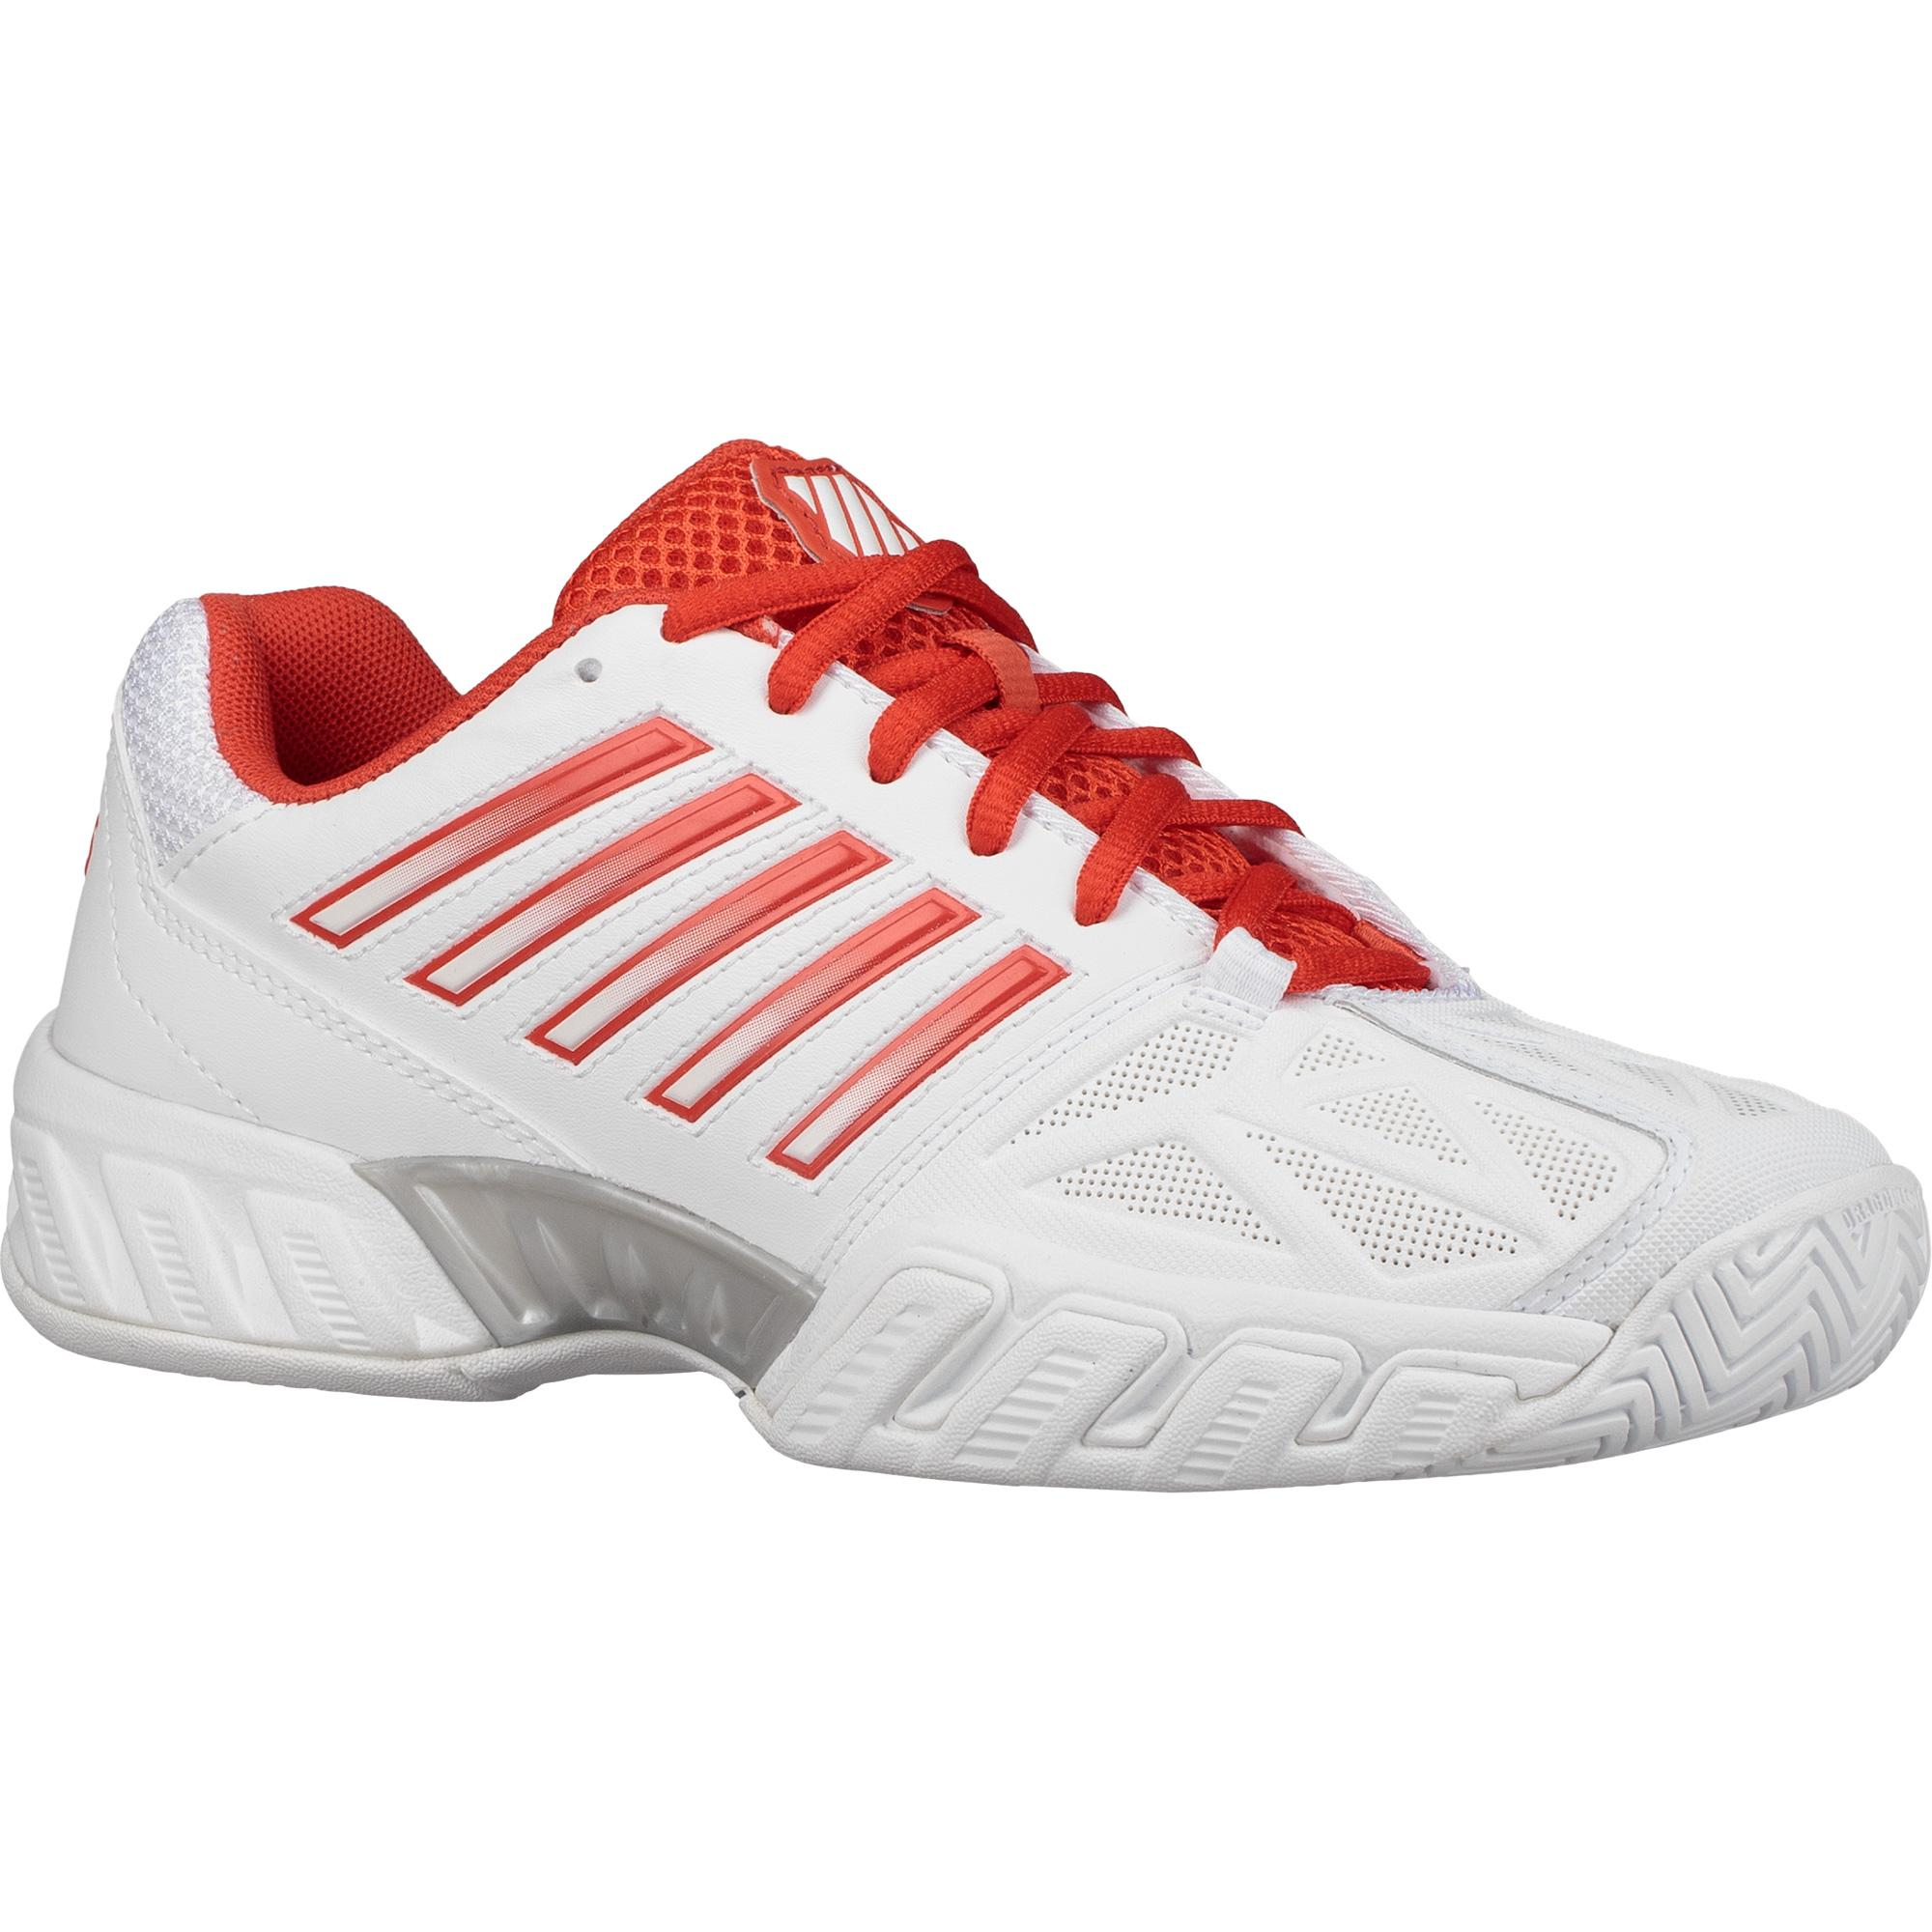 K Swiss Womens Tennis Shoes White Silver